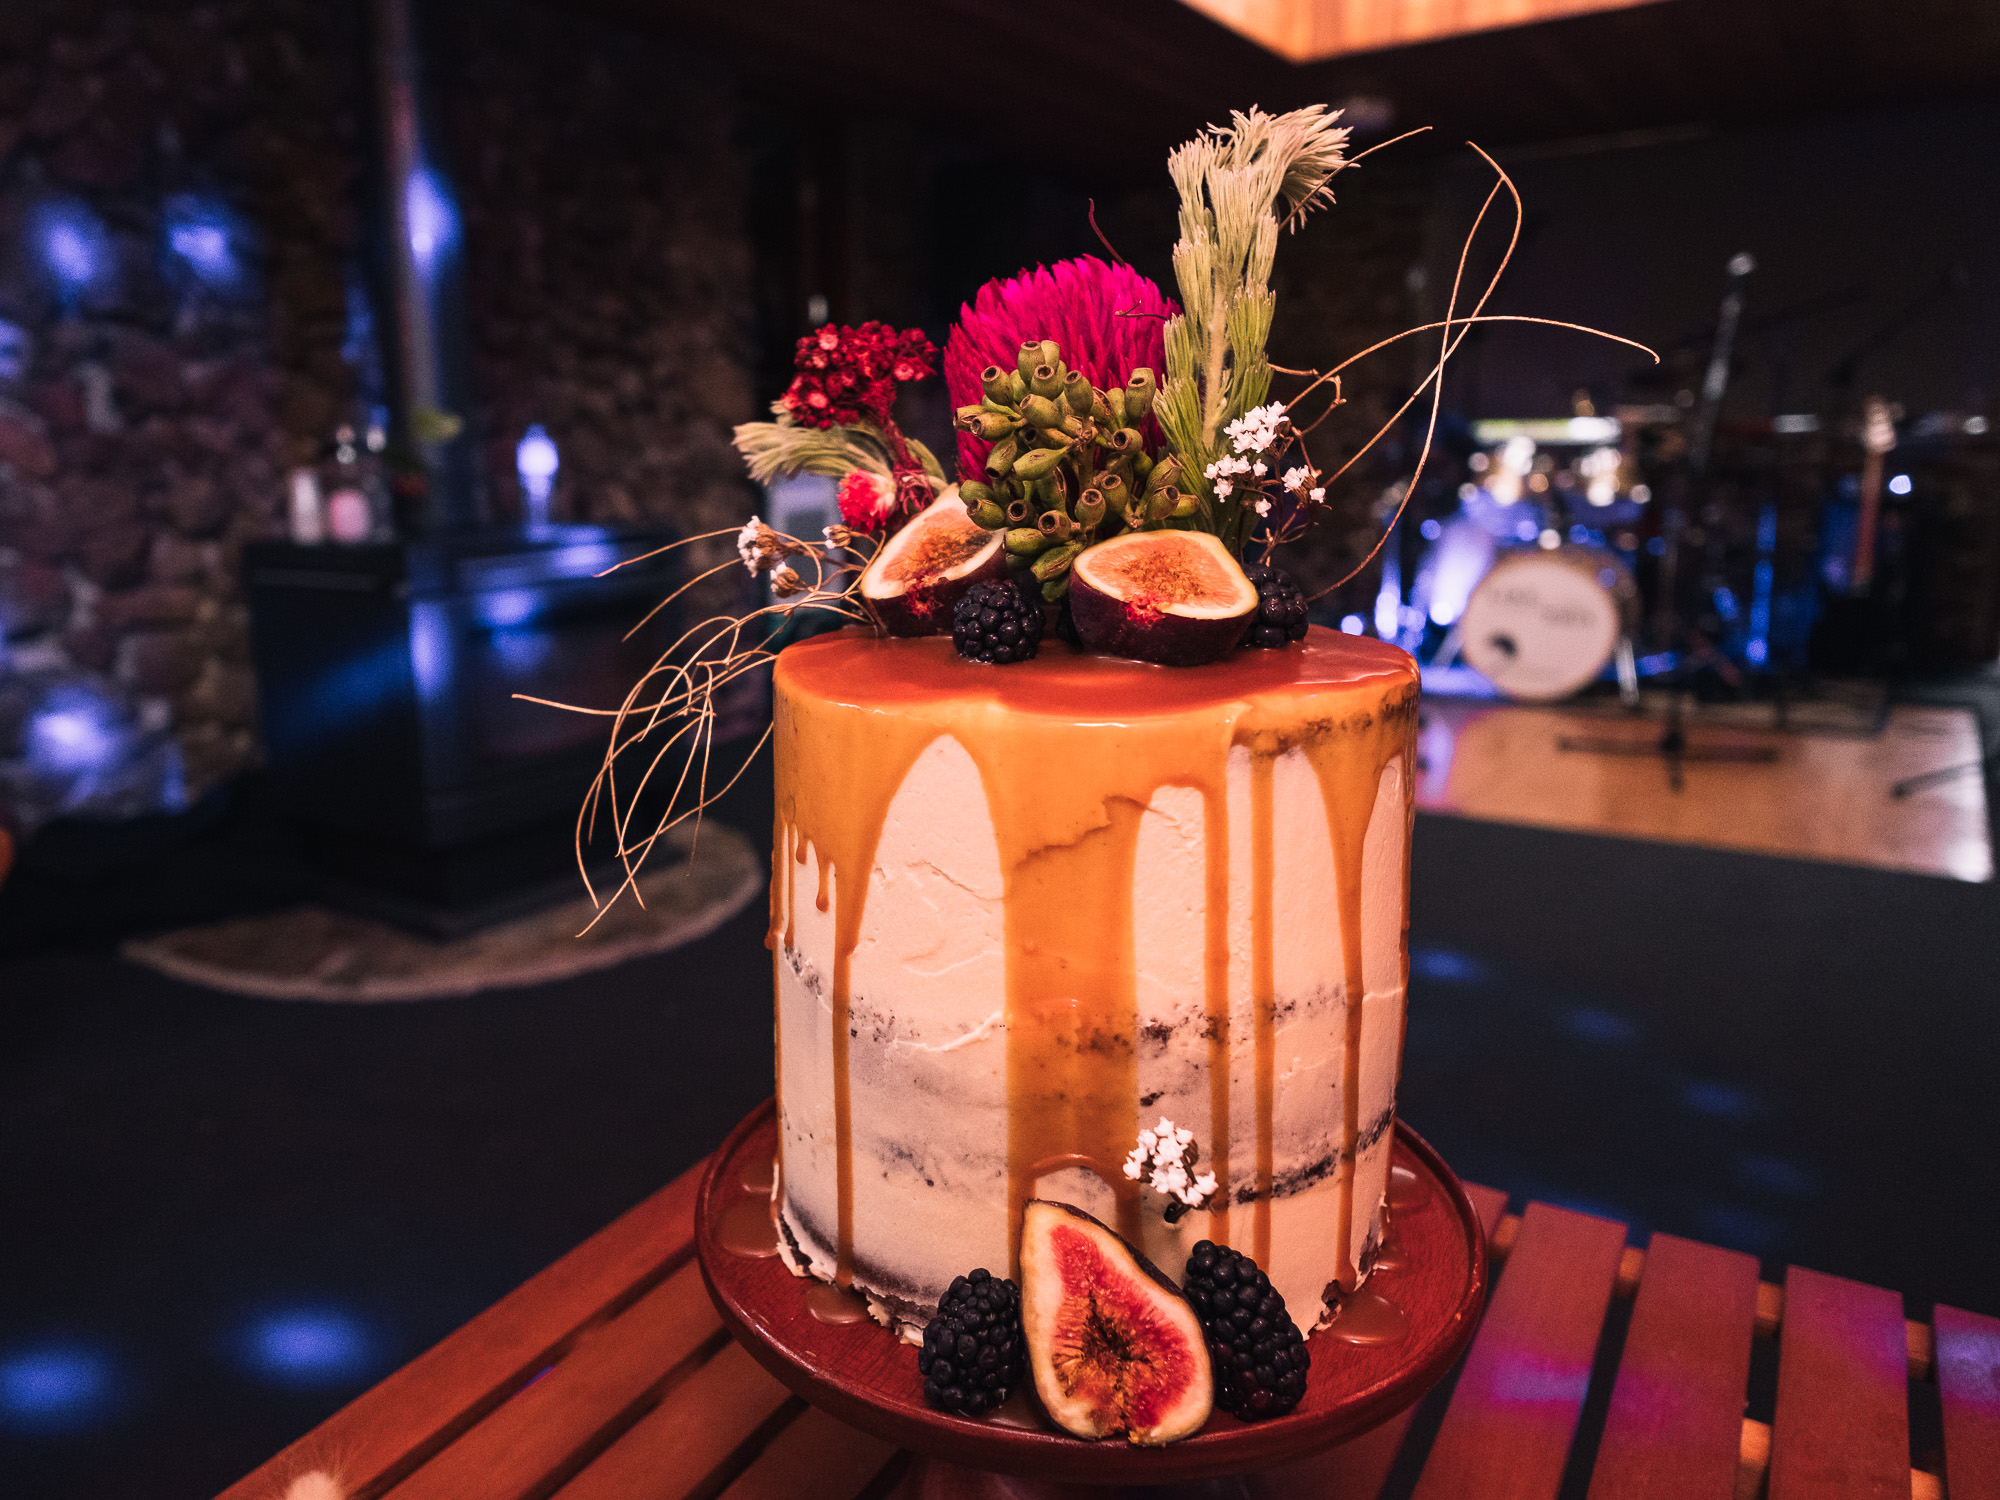 Melbourne Sunnystones Camp Wedding - wedding cake